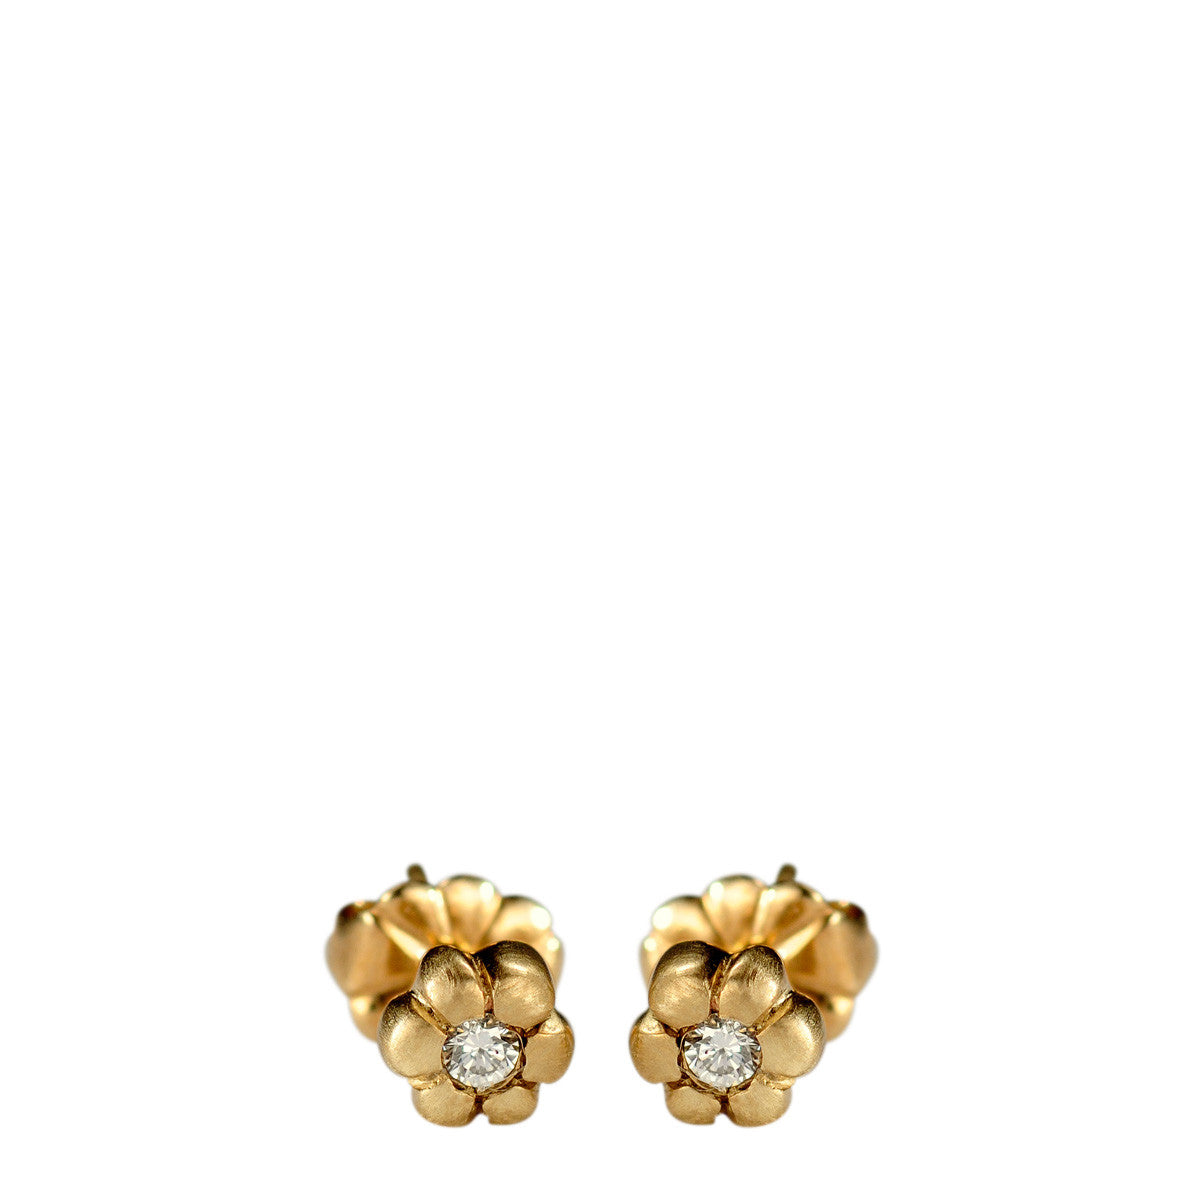 10K Gold Tiny Flower Stud Earrings with Diamonds